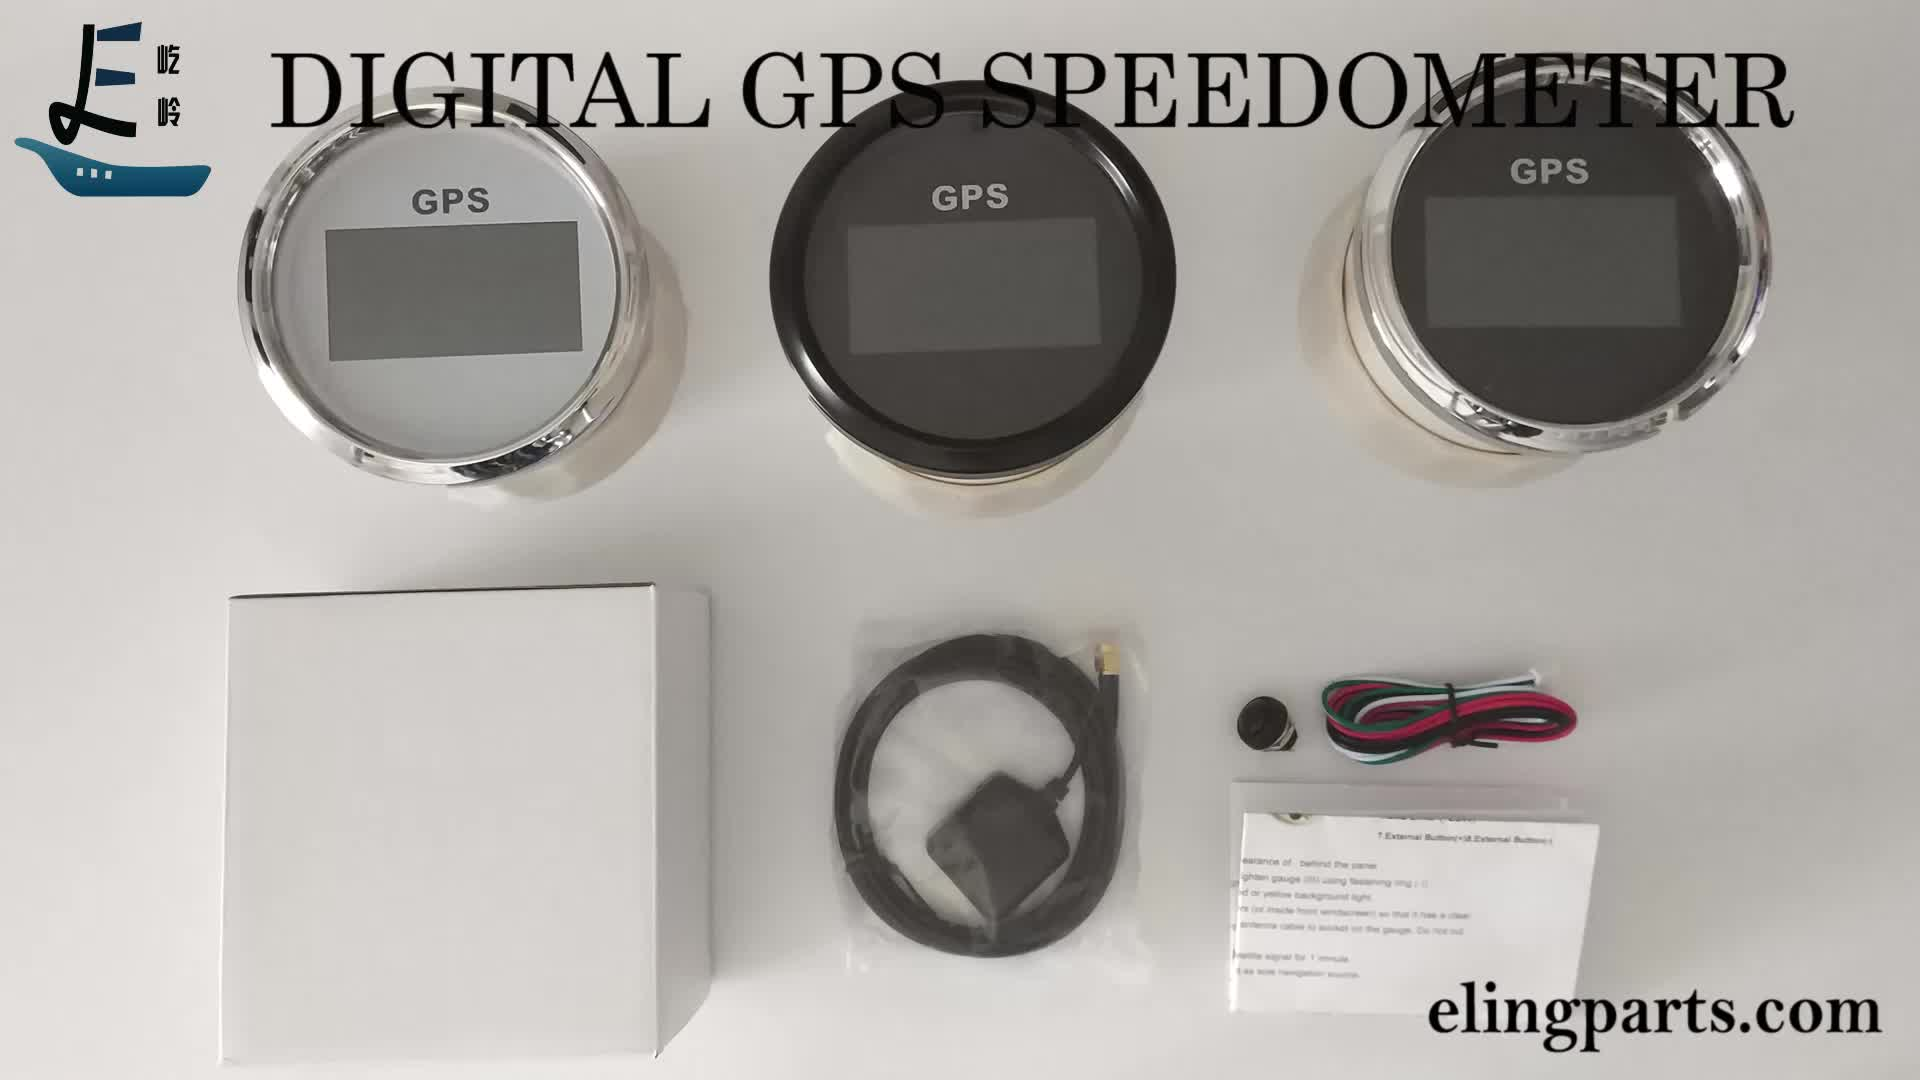 7 Backlights Motorcycle 85mm Digital GPS Speedometer COG Odometer Mileage Trip Counter Adjustable With GPS Antenna